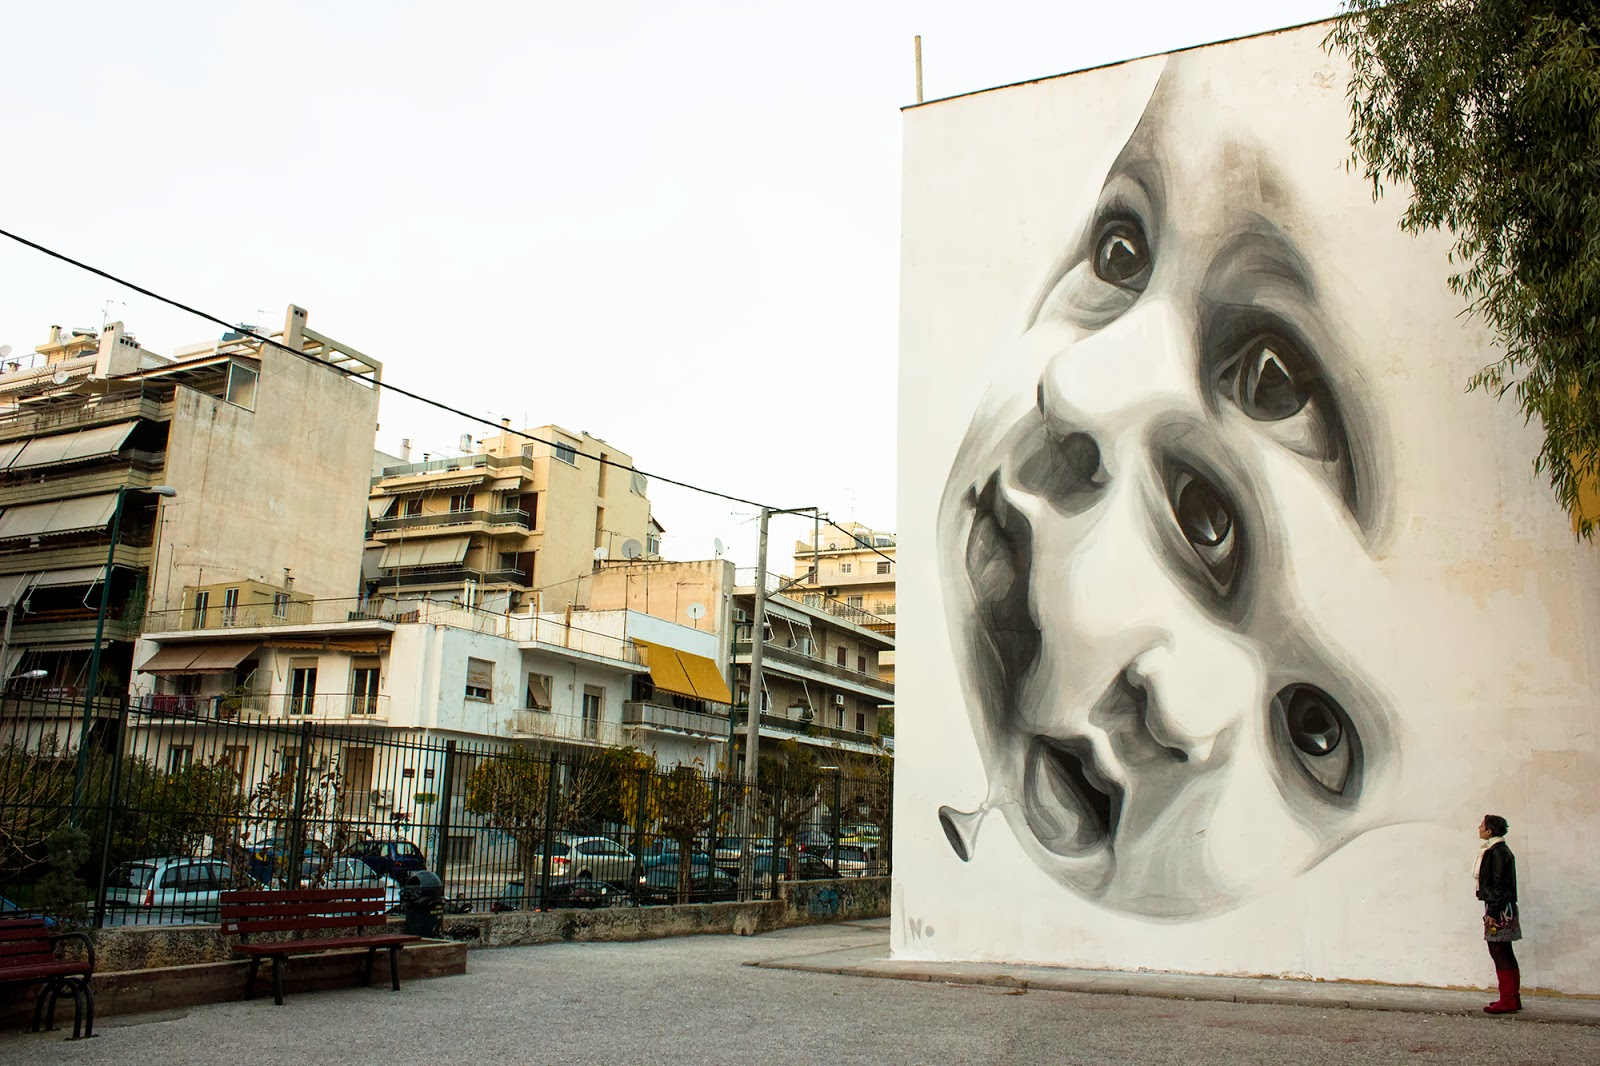 ino-future-new-mural-athens-greece-07